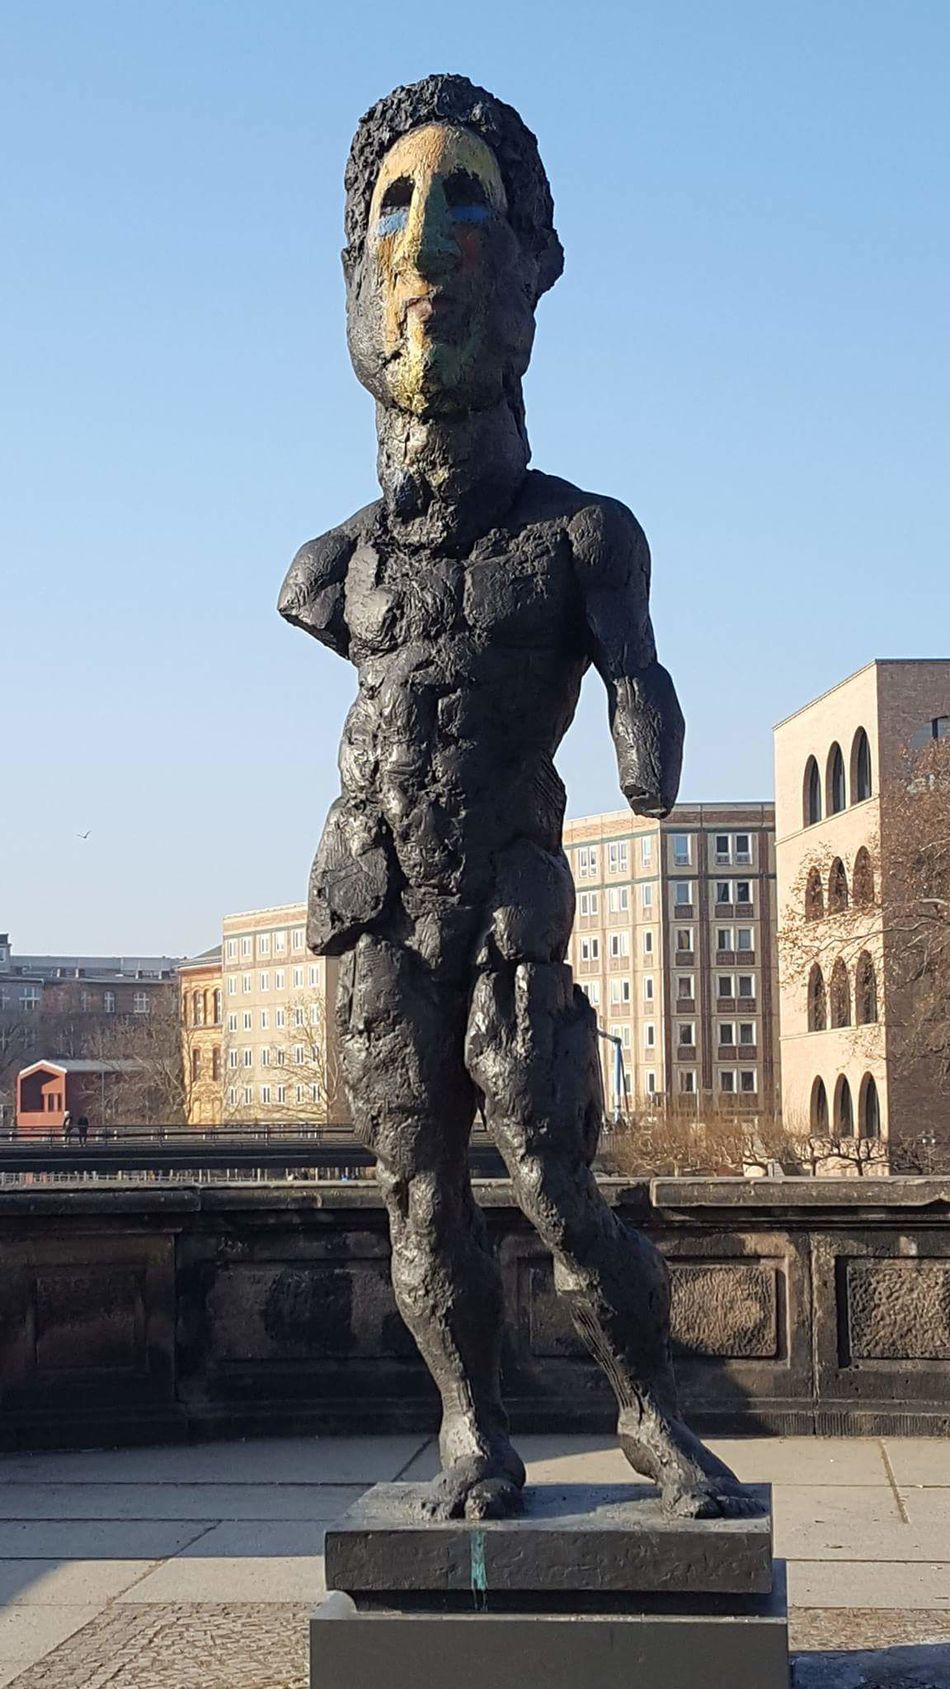 Berlin Art Statue Statue Sculpture City Art And Craft Architecture History Built Structure Monument Museum Travel Destinations Cityscape Sky Shield Outdoors Building Exterior Day King - Royal Person No People